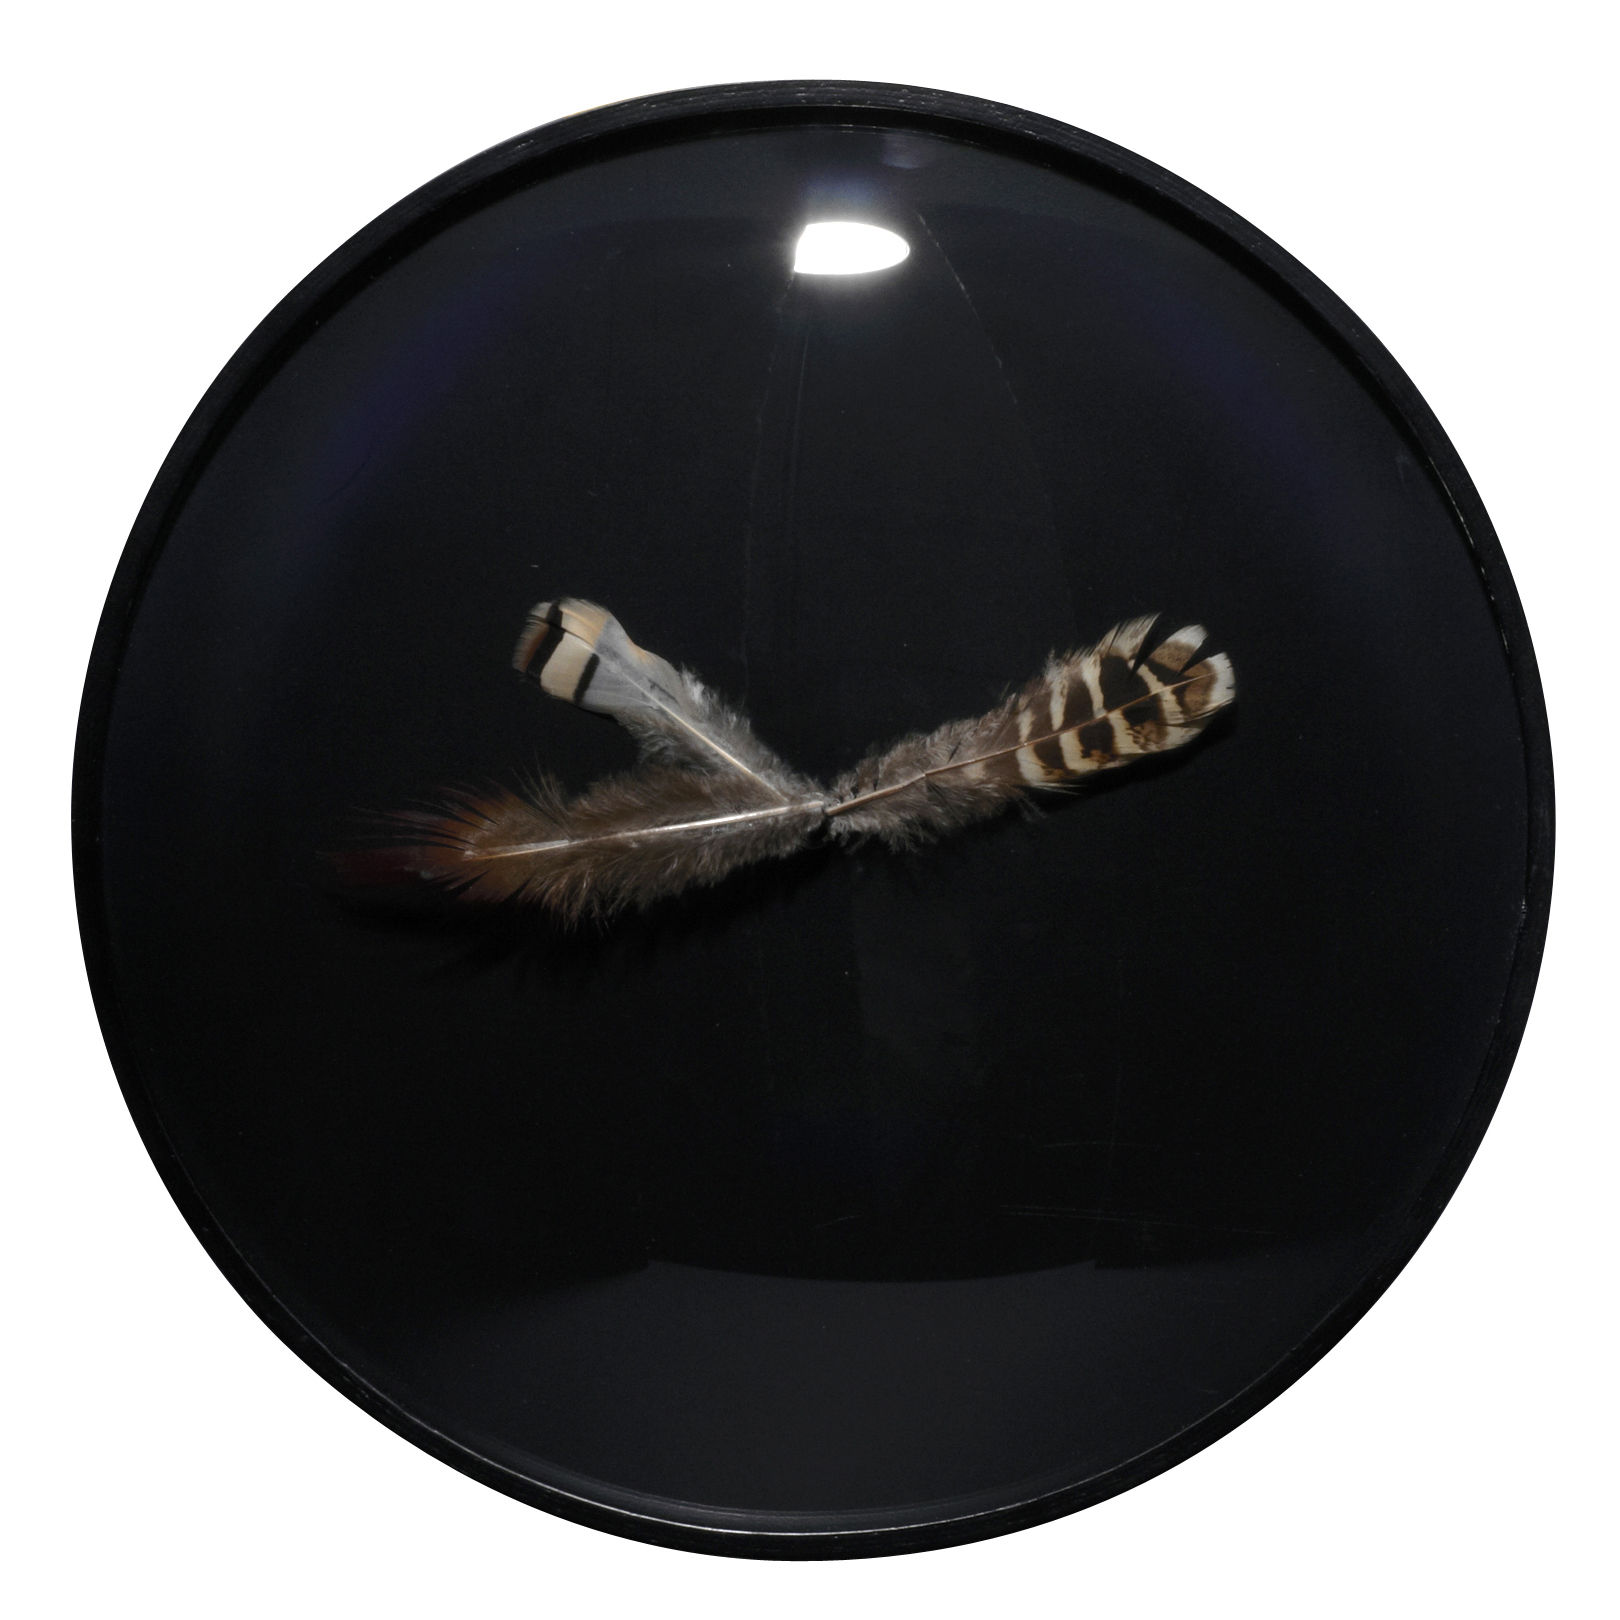 Decoration - Wall Clocks - Wall clock by L'atelier d'exercices - Black - Glass, Wood